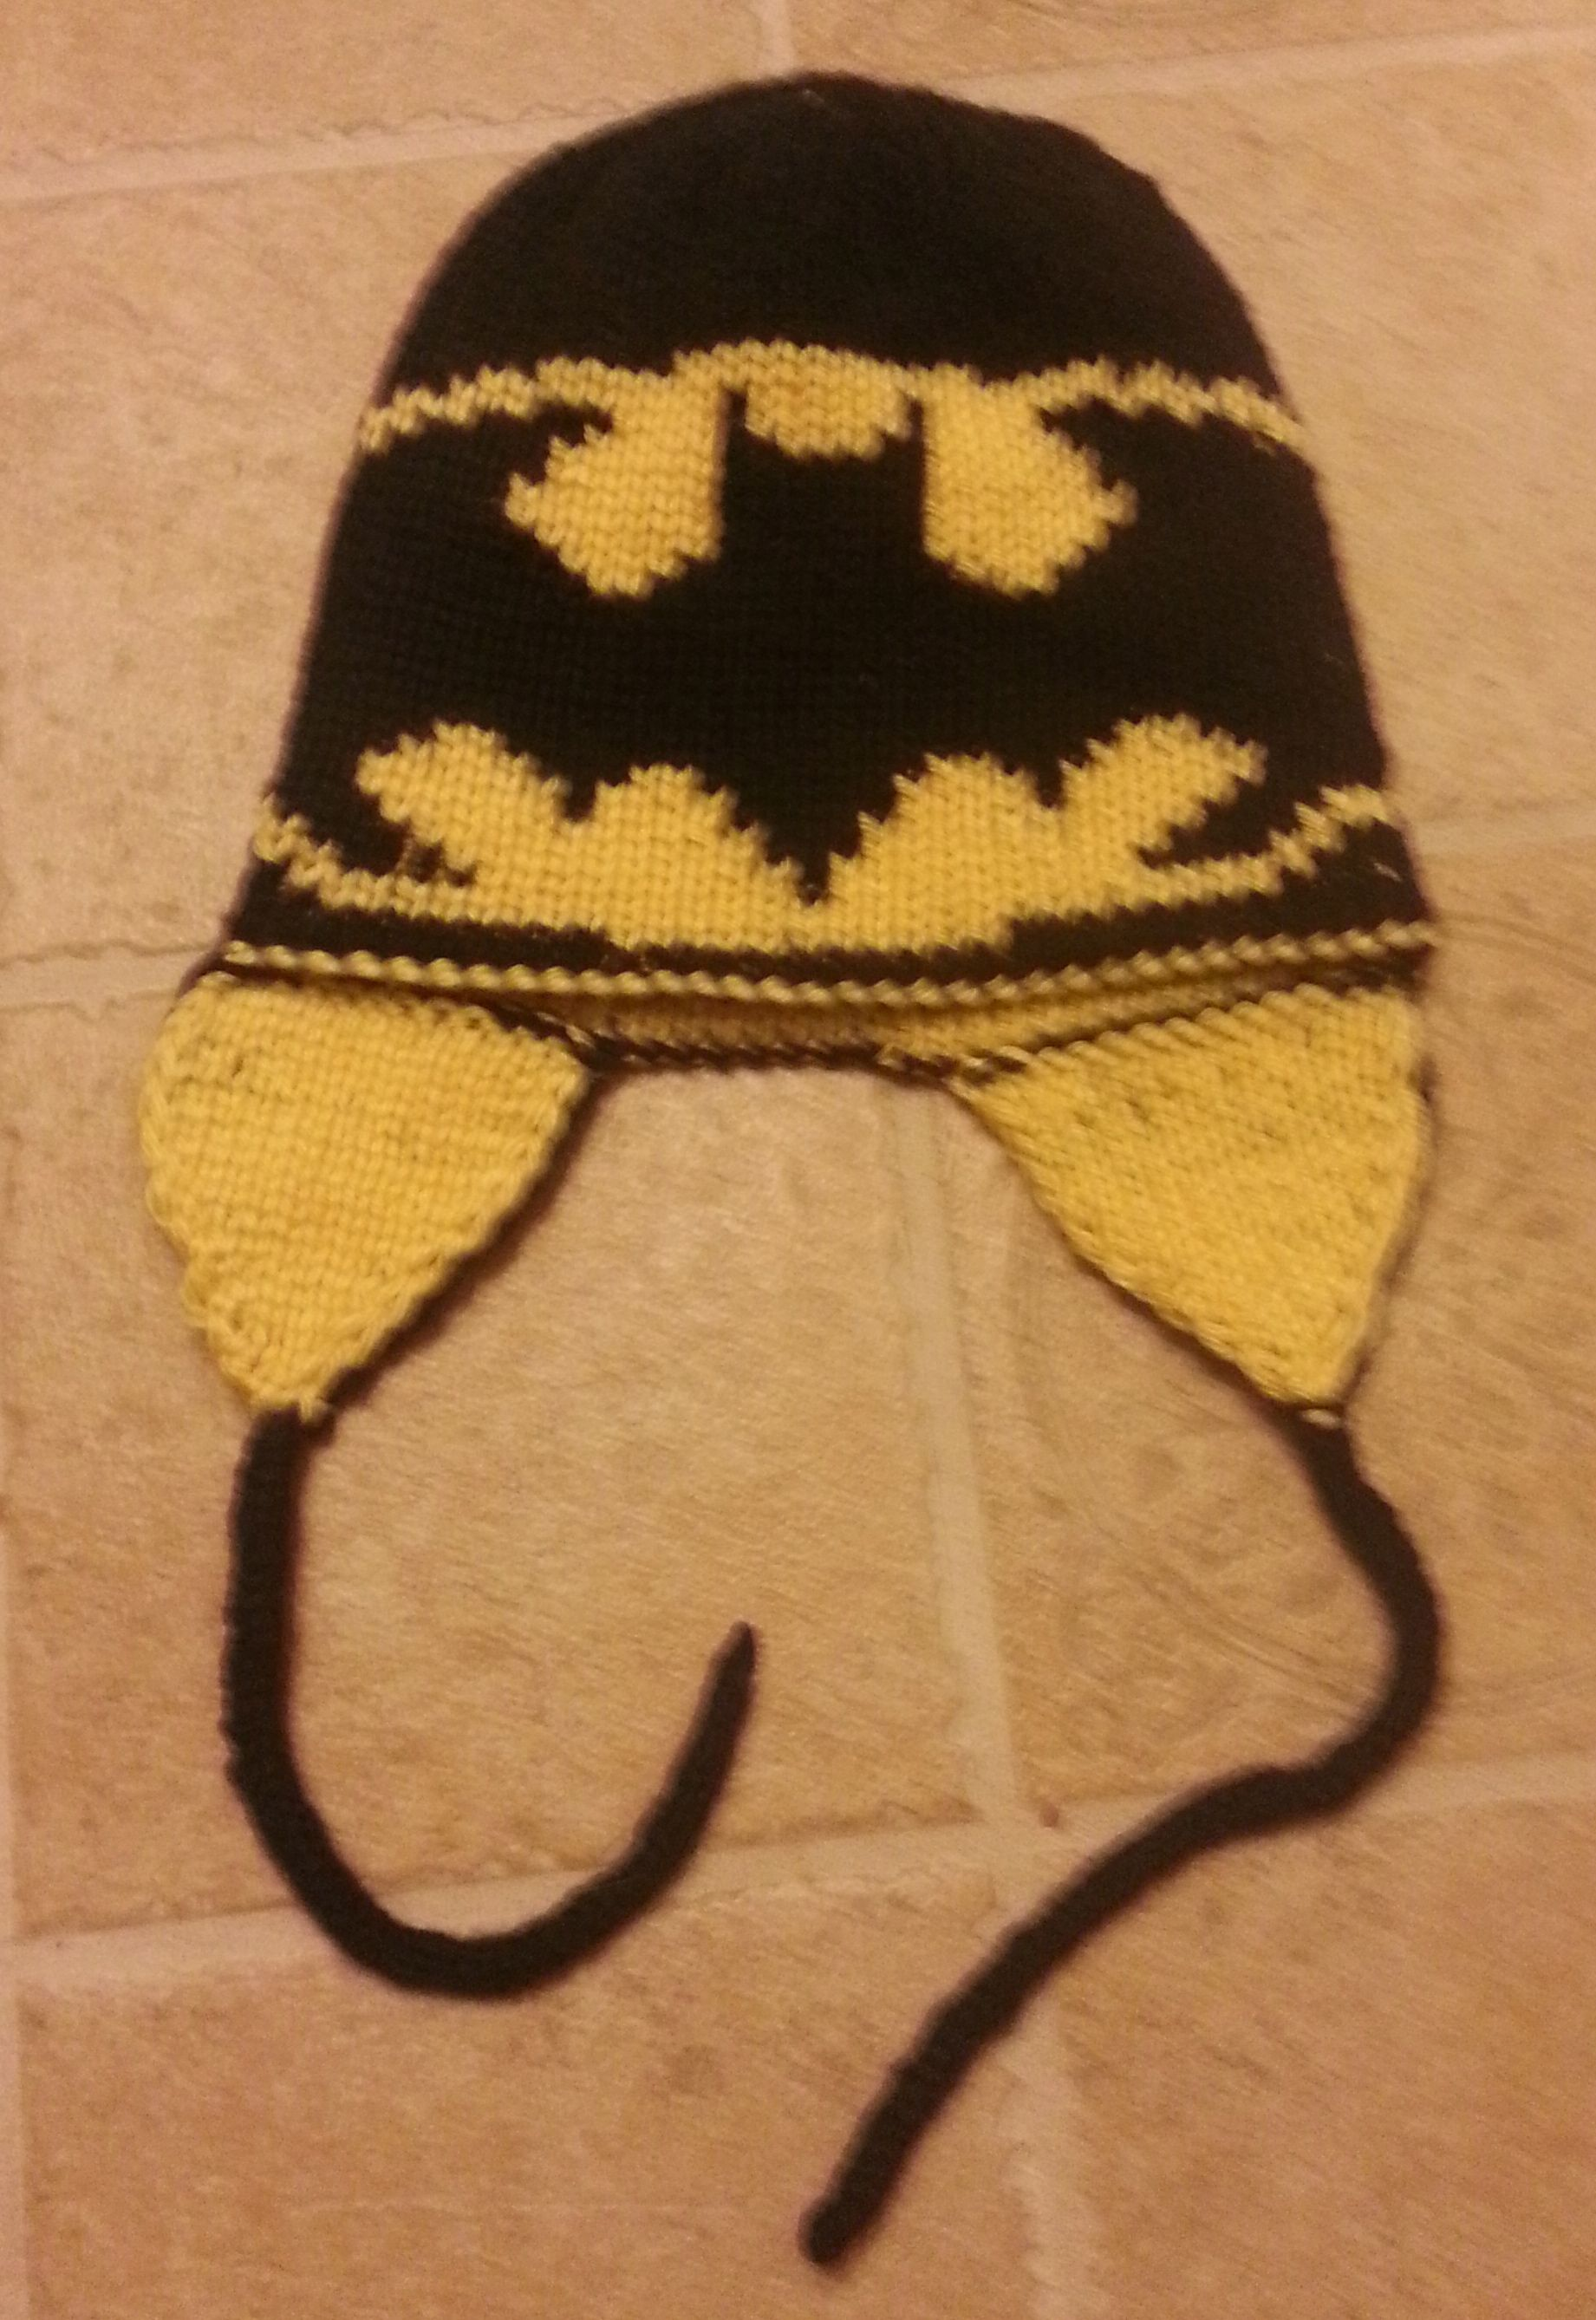 Double knit bat hat pattern for sale on marysknittingstuff double knit bat hat pattern for sale on marysknittingstuff bankloansurffo Gallery